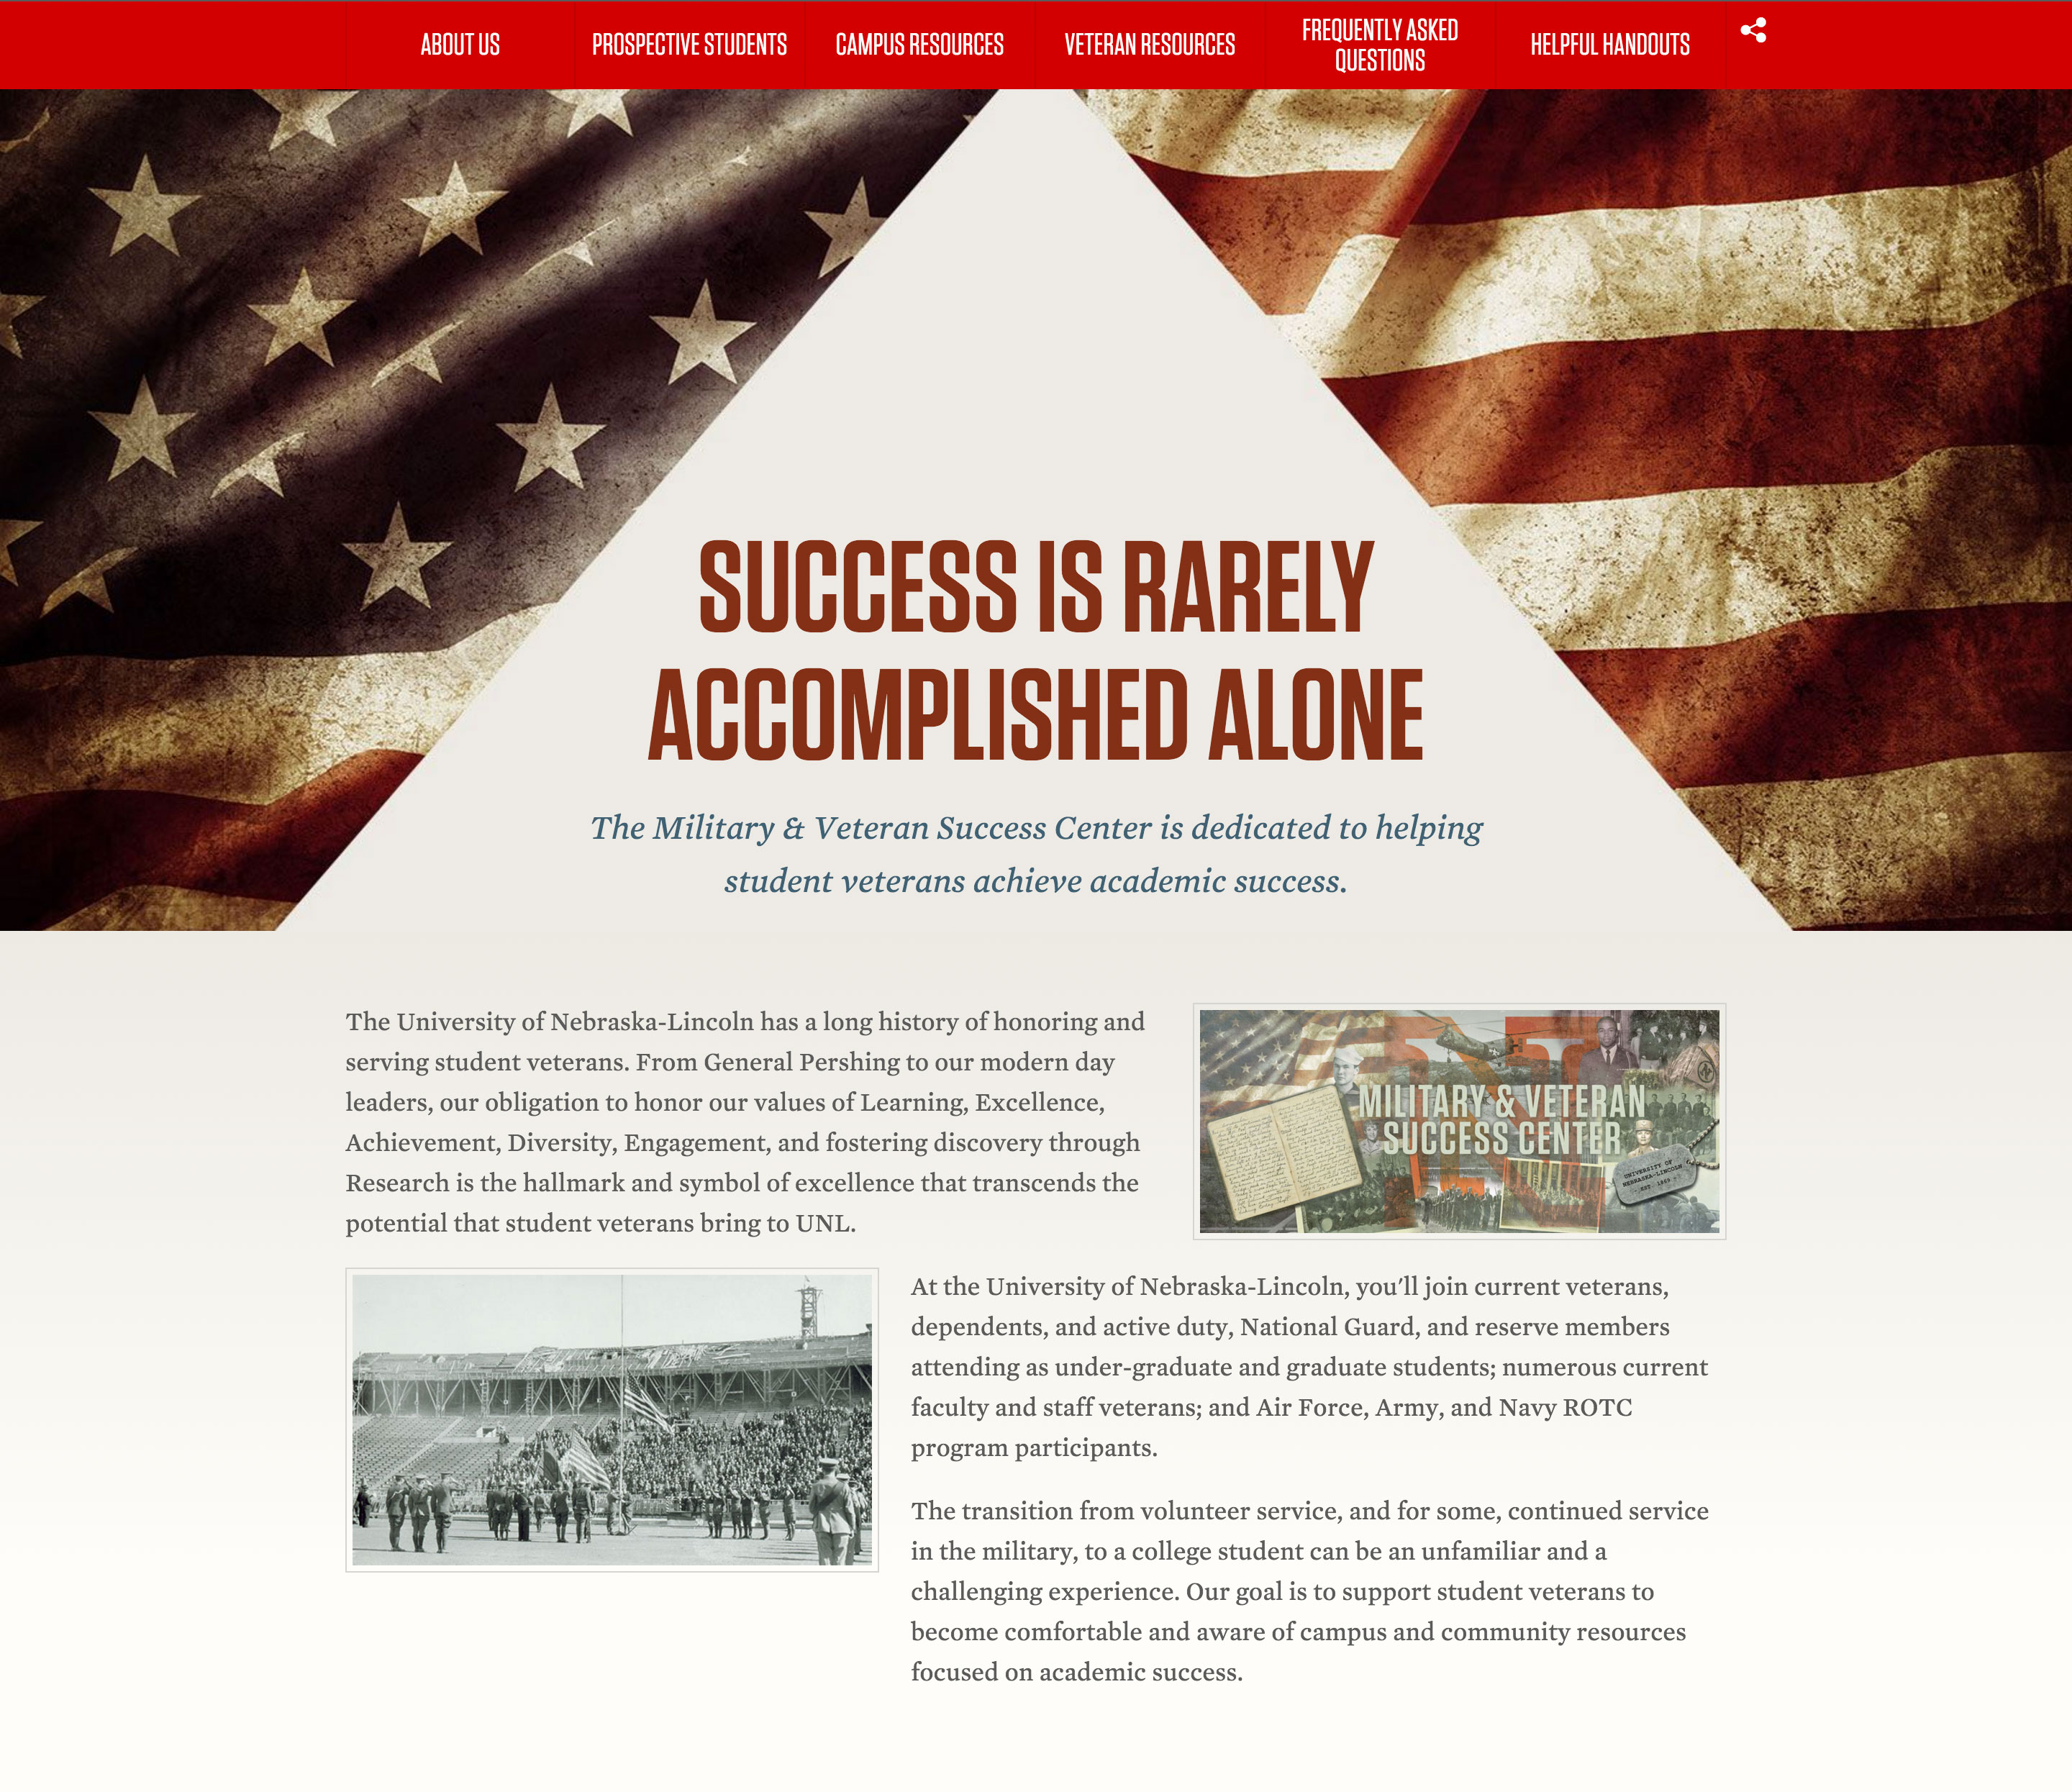 Top of the Military & Veteran Success Center home page